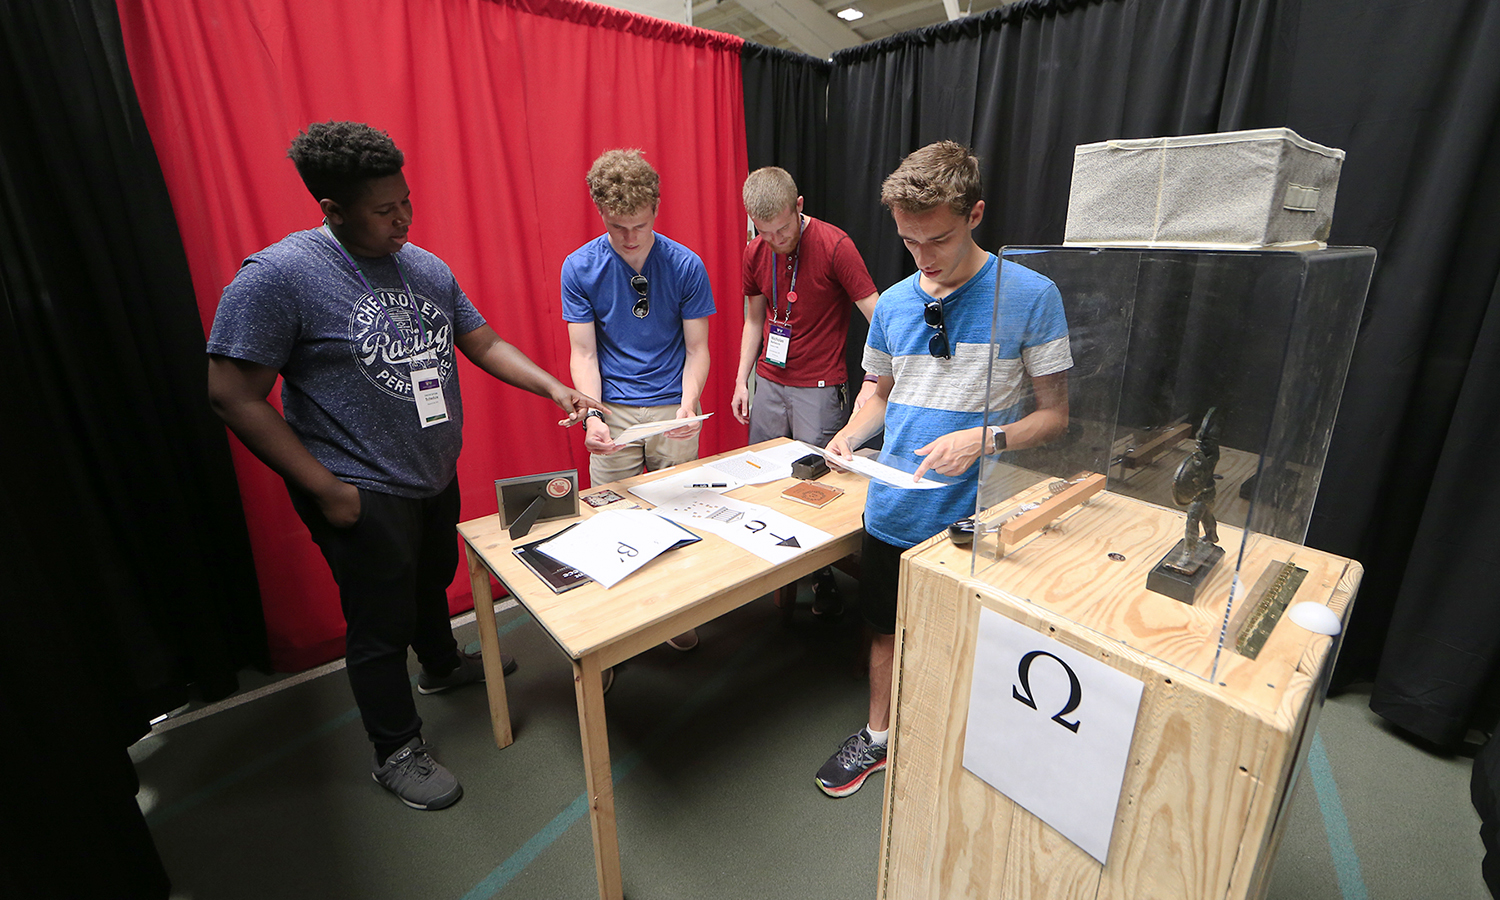 Sammy Adcock '22, Kayon'Dre Betaudier '22, Nicholas Barbaccia '22 and Matthew Ayres '22 collaborate to break out of an escape room during Orientation Weekend's teambuilding session at Bristol Field House.